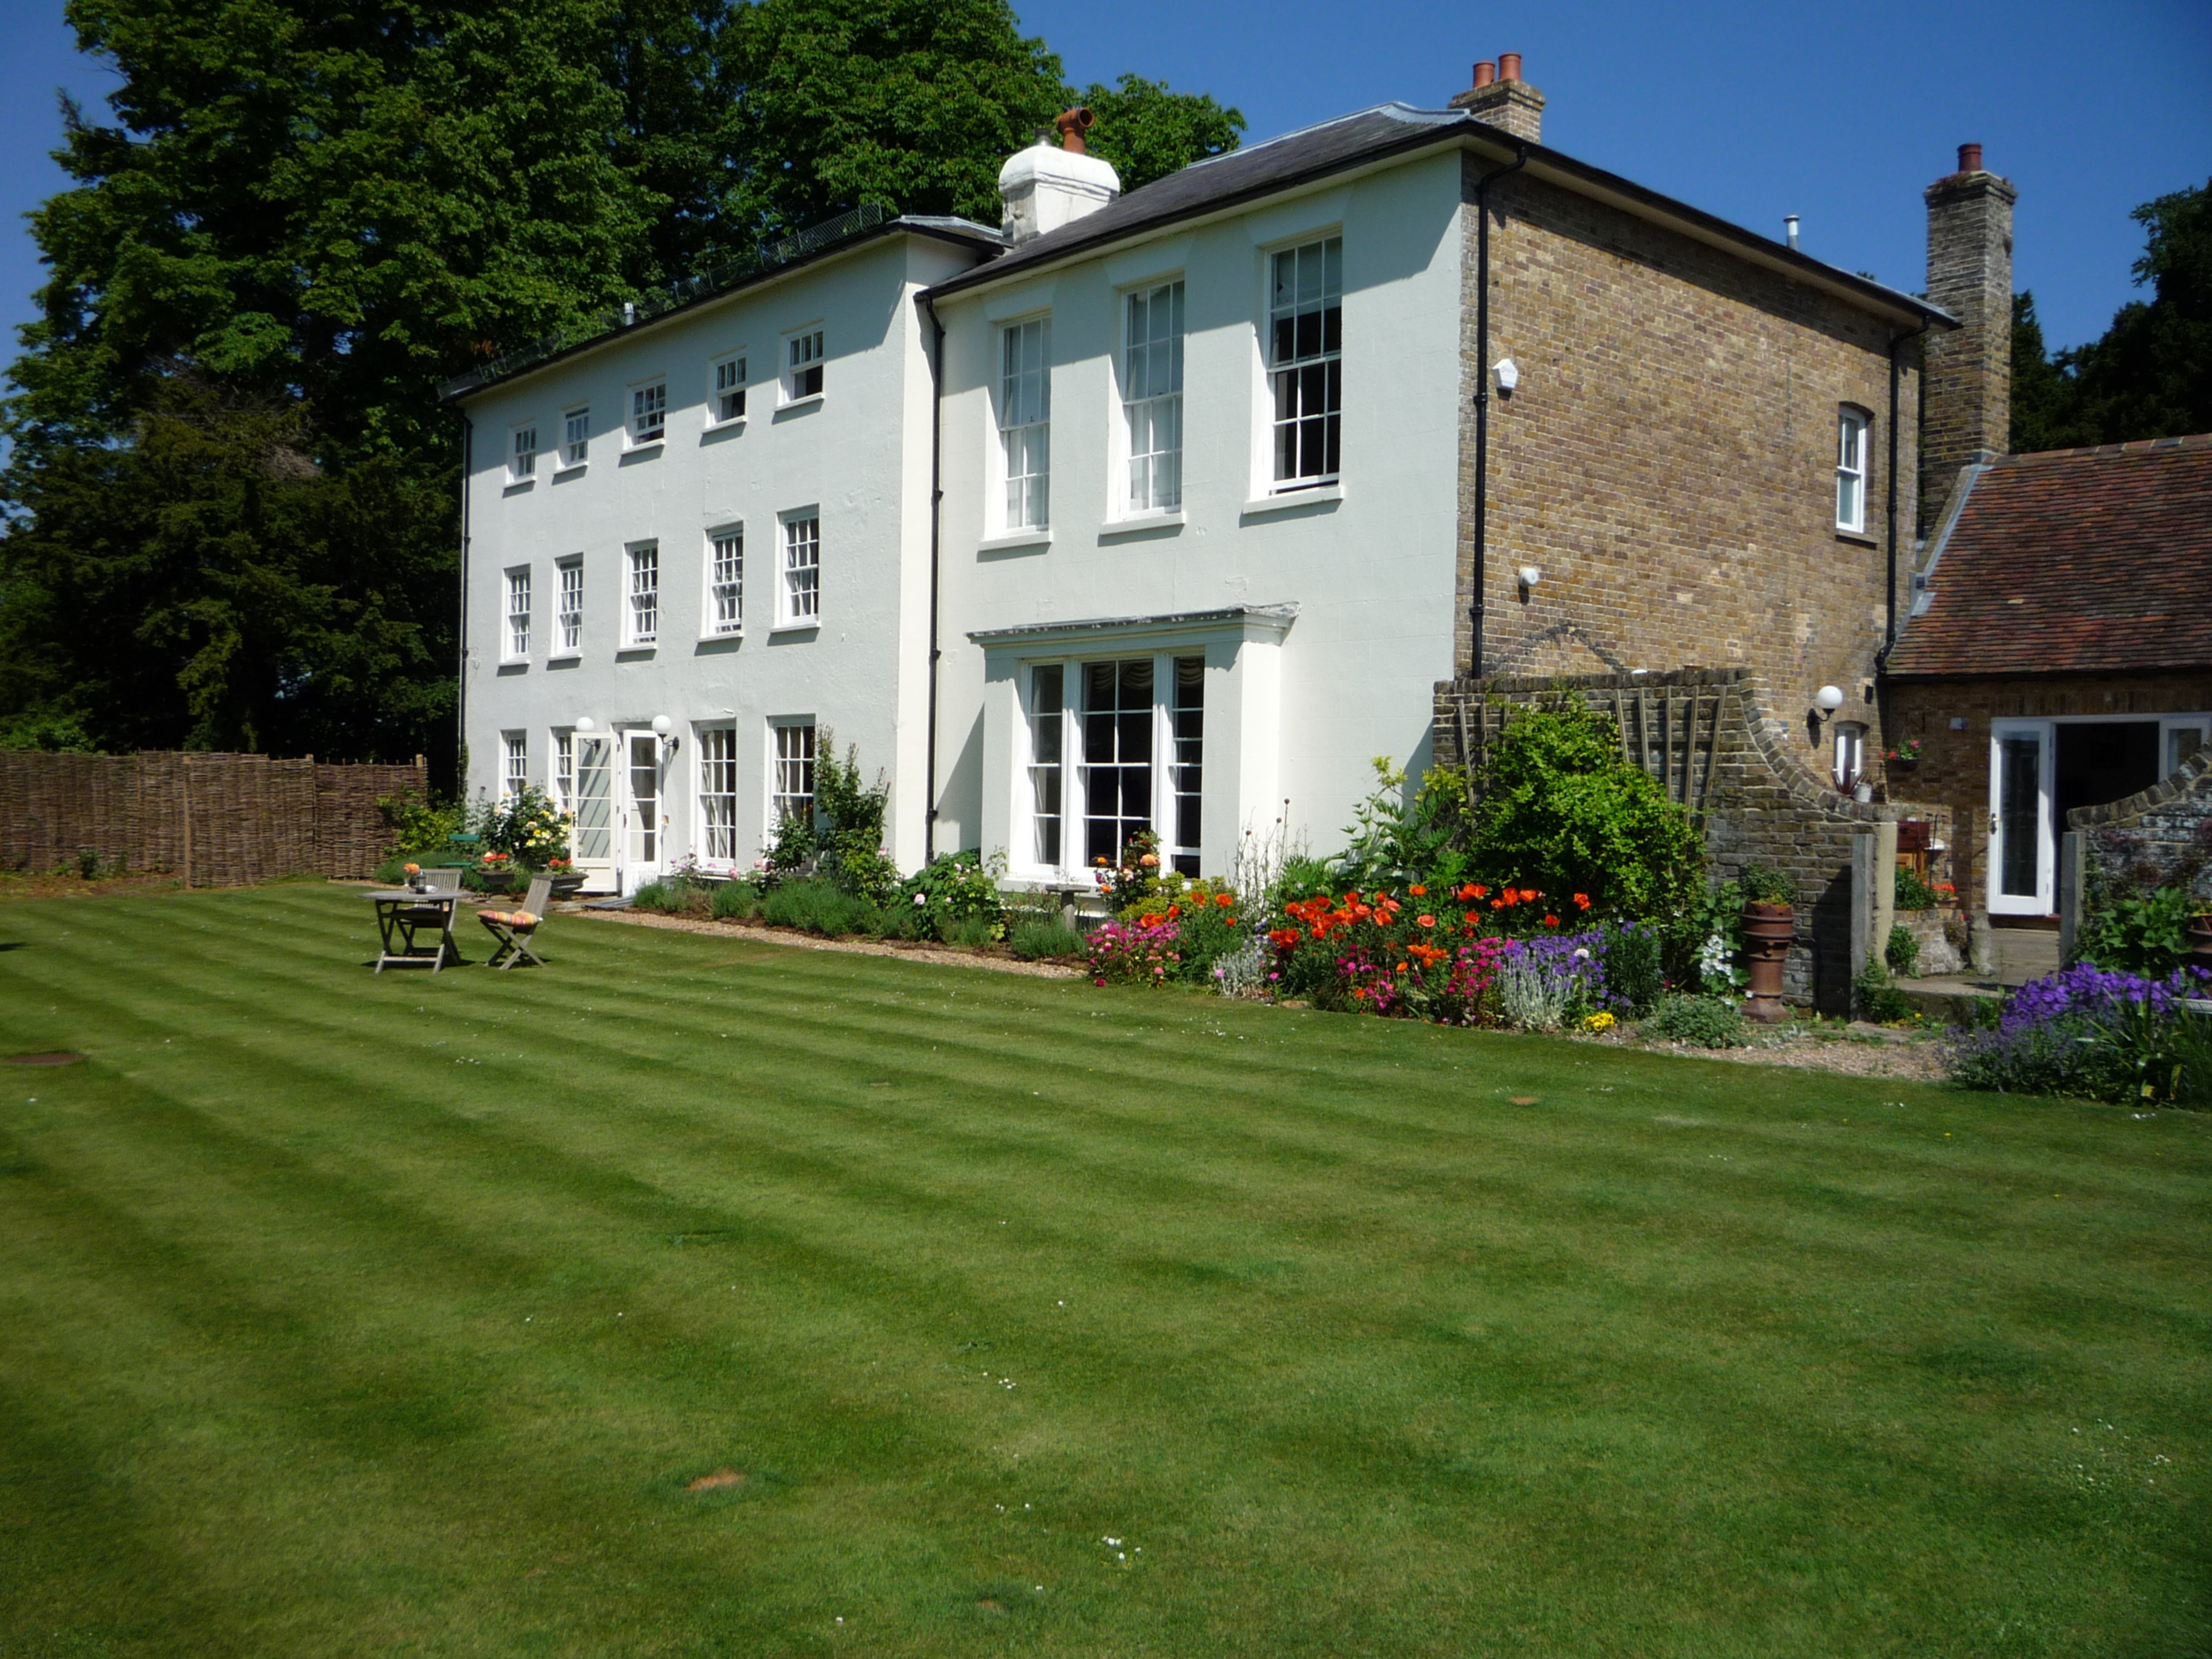 A large lawn in front of a house at The Old Vicarage.